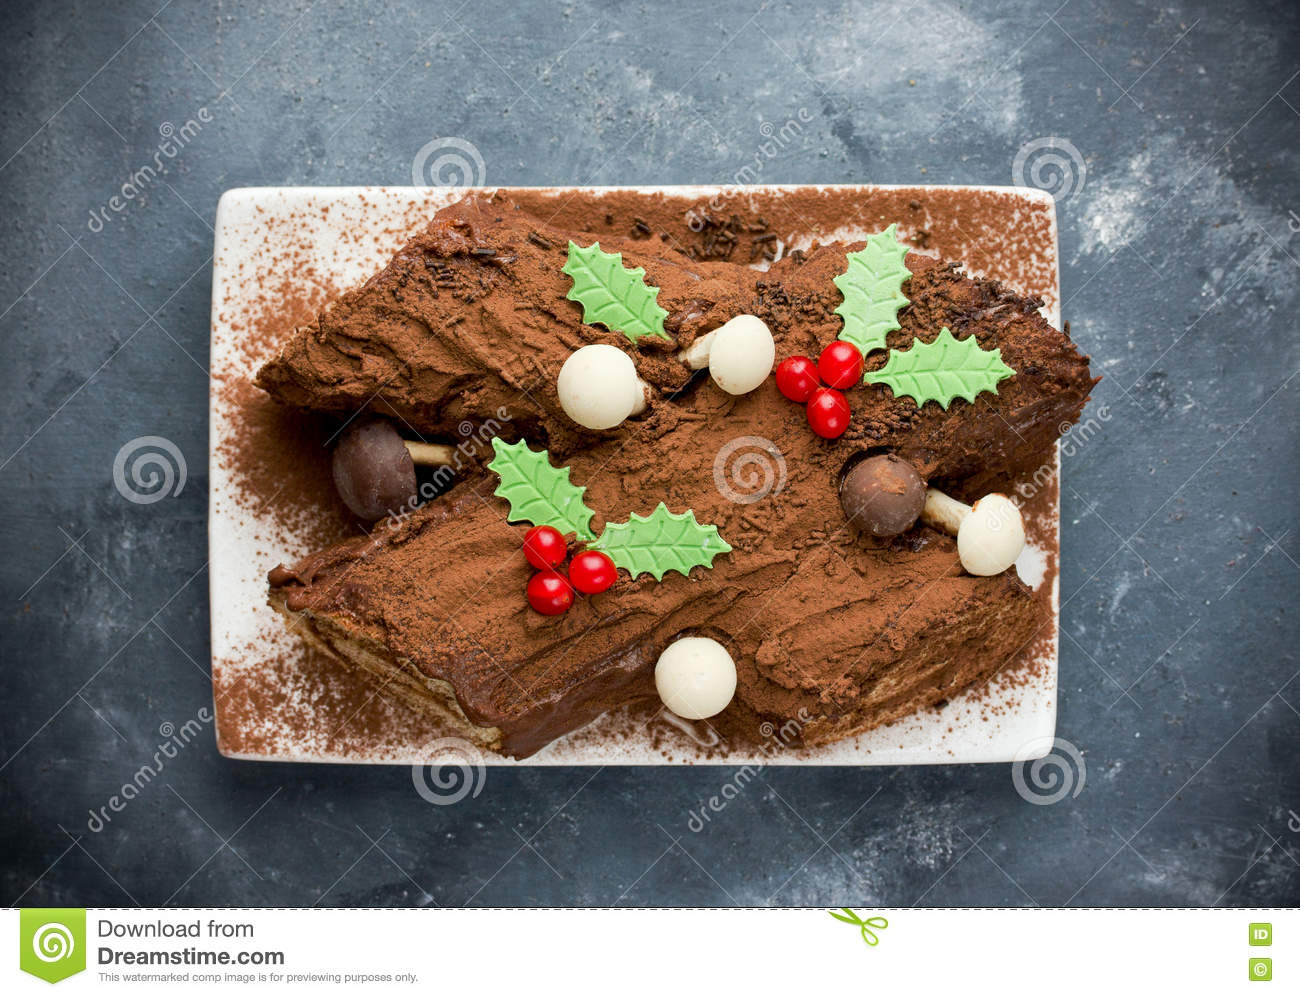 Traditional Christmas Yule Log Cake Decorated With Chocolate Holly